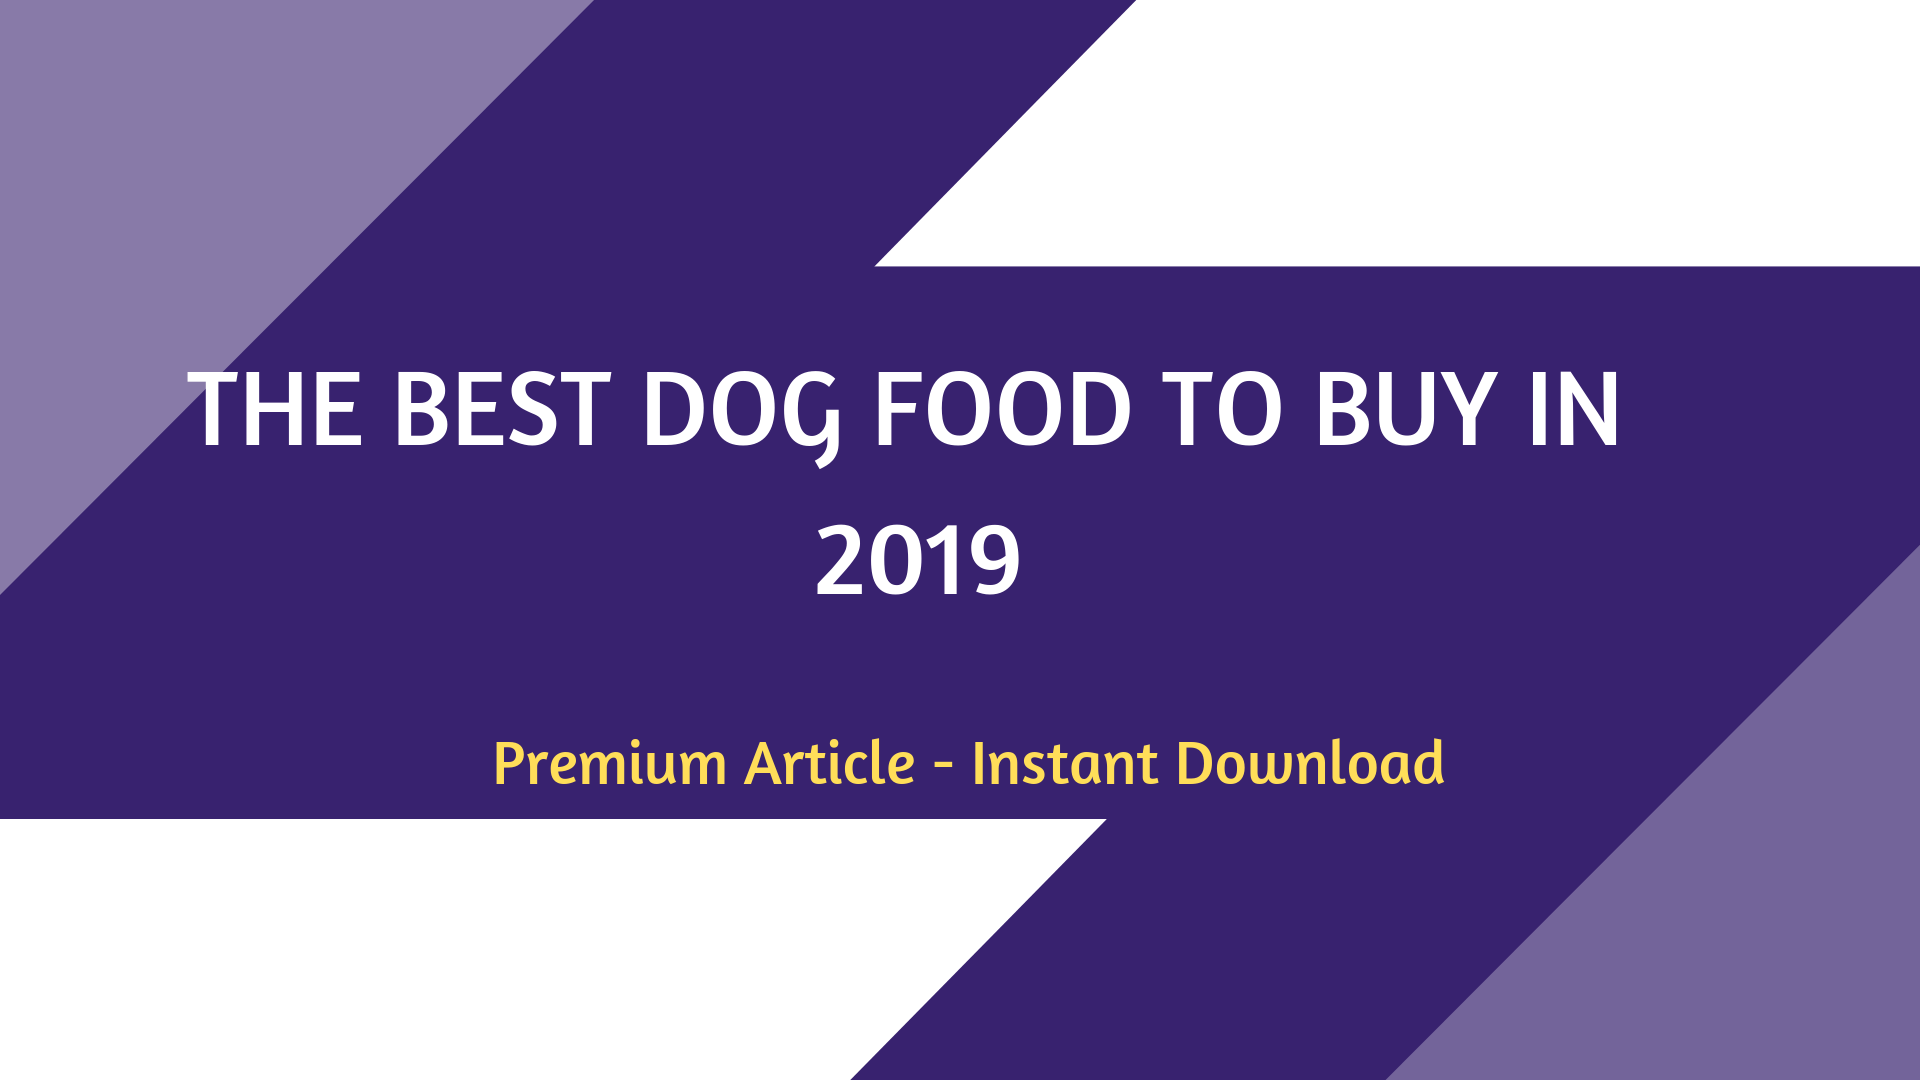 What Are The Best Dog Food in 2019